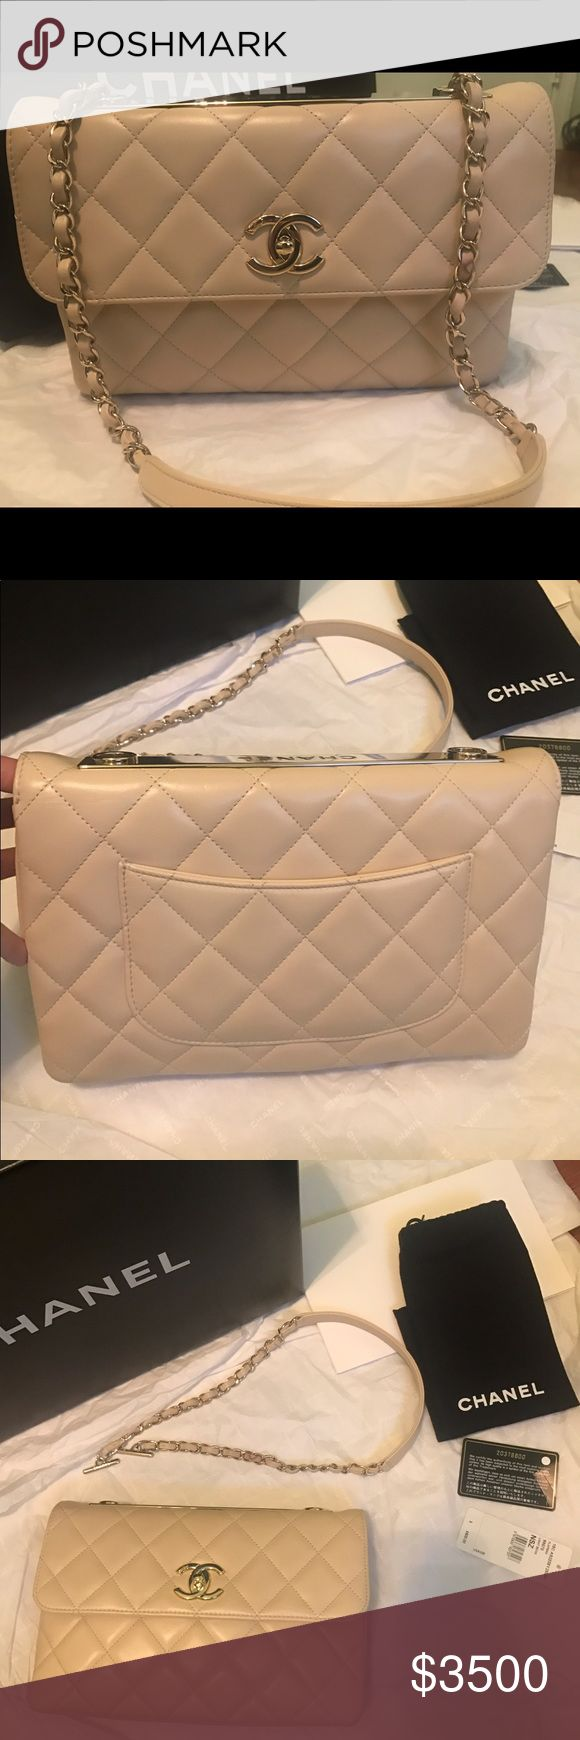 """NWT CHANEL MEDIUM FLAP BAG CLUTCH SHOULDER $4500 NEW CHANEL FLAP BAG 15C A92235 GOLD PLATE MSRP $4500. Had box, dustbag, booklet, price tag, card and tissues. Approx. 10.5"""" x 6.5"""" x 1.7"""". Shoulder and clutch style. Light Beige and lambskin. Two compartments & interior zipper. Burgundy leather interior. Made in ITALY. I accept best offers and welcome inquiries.  As a disclaimer, this bag was a store viewing merchandise, so it has few signs of handling in the leather, hardware, and defects in…"""